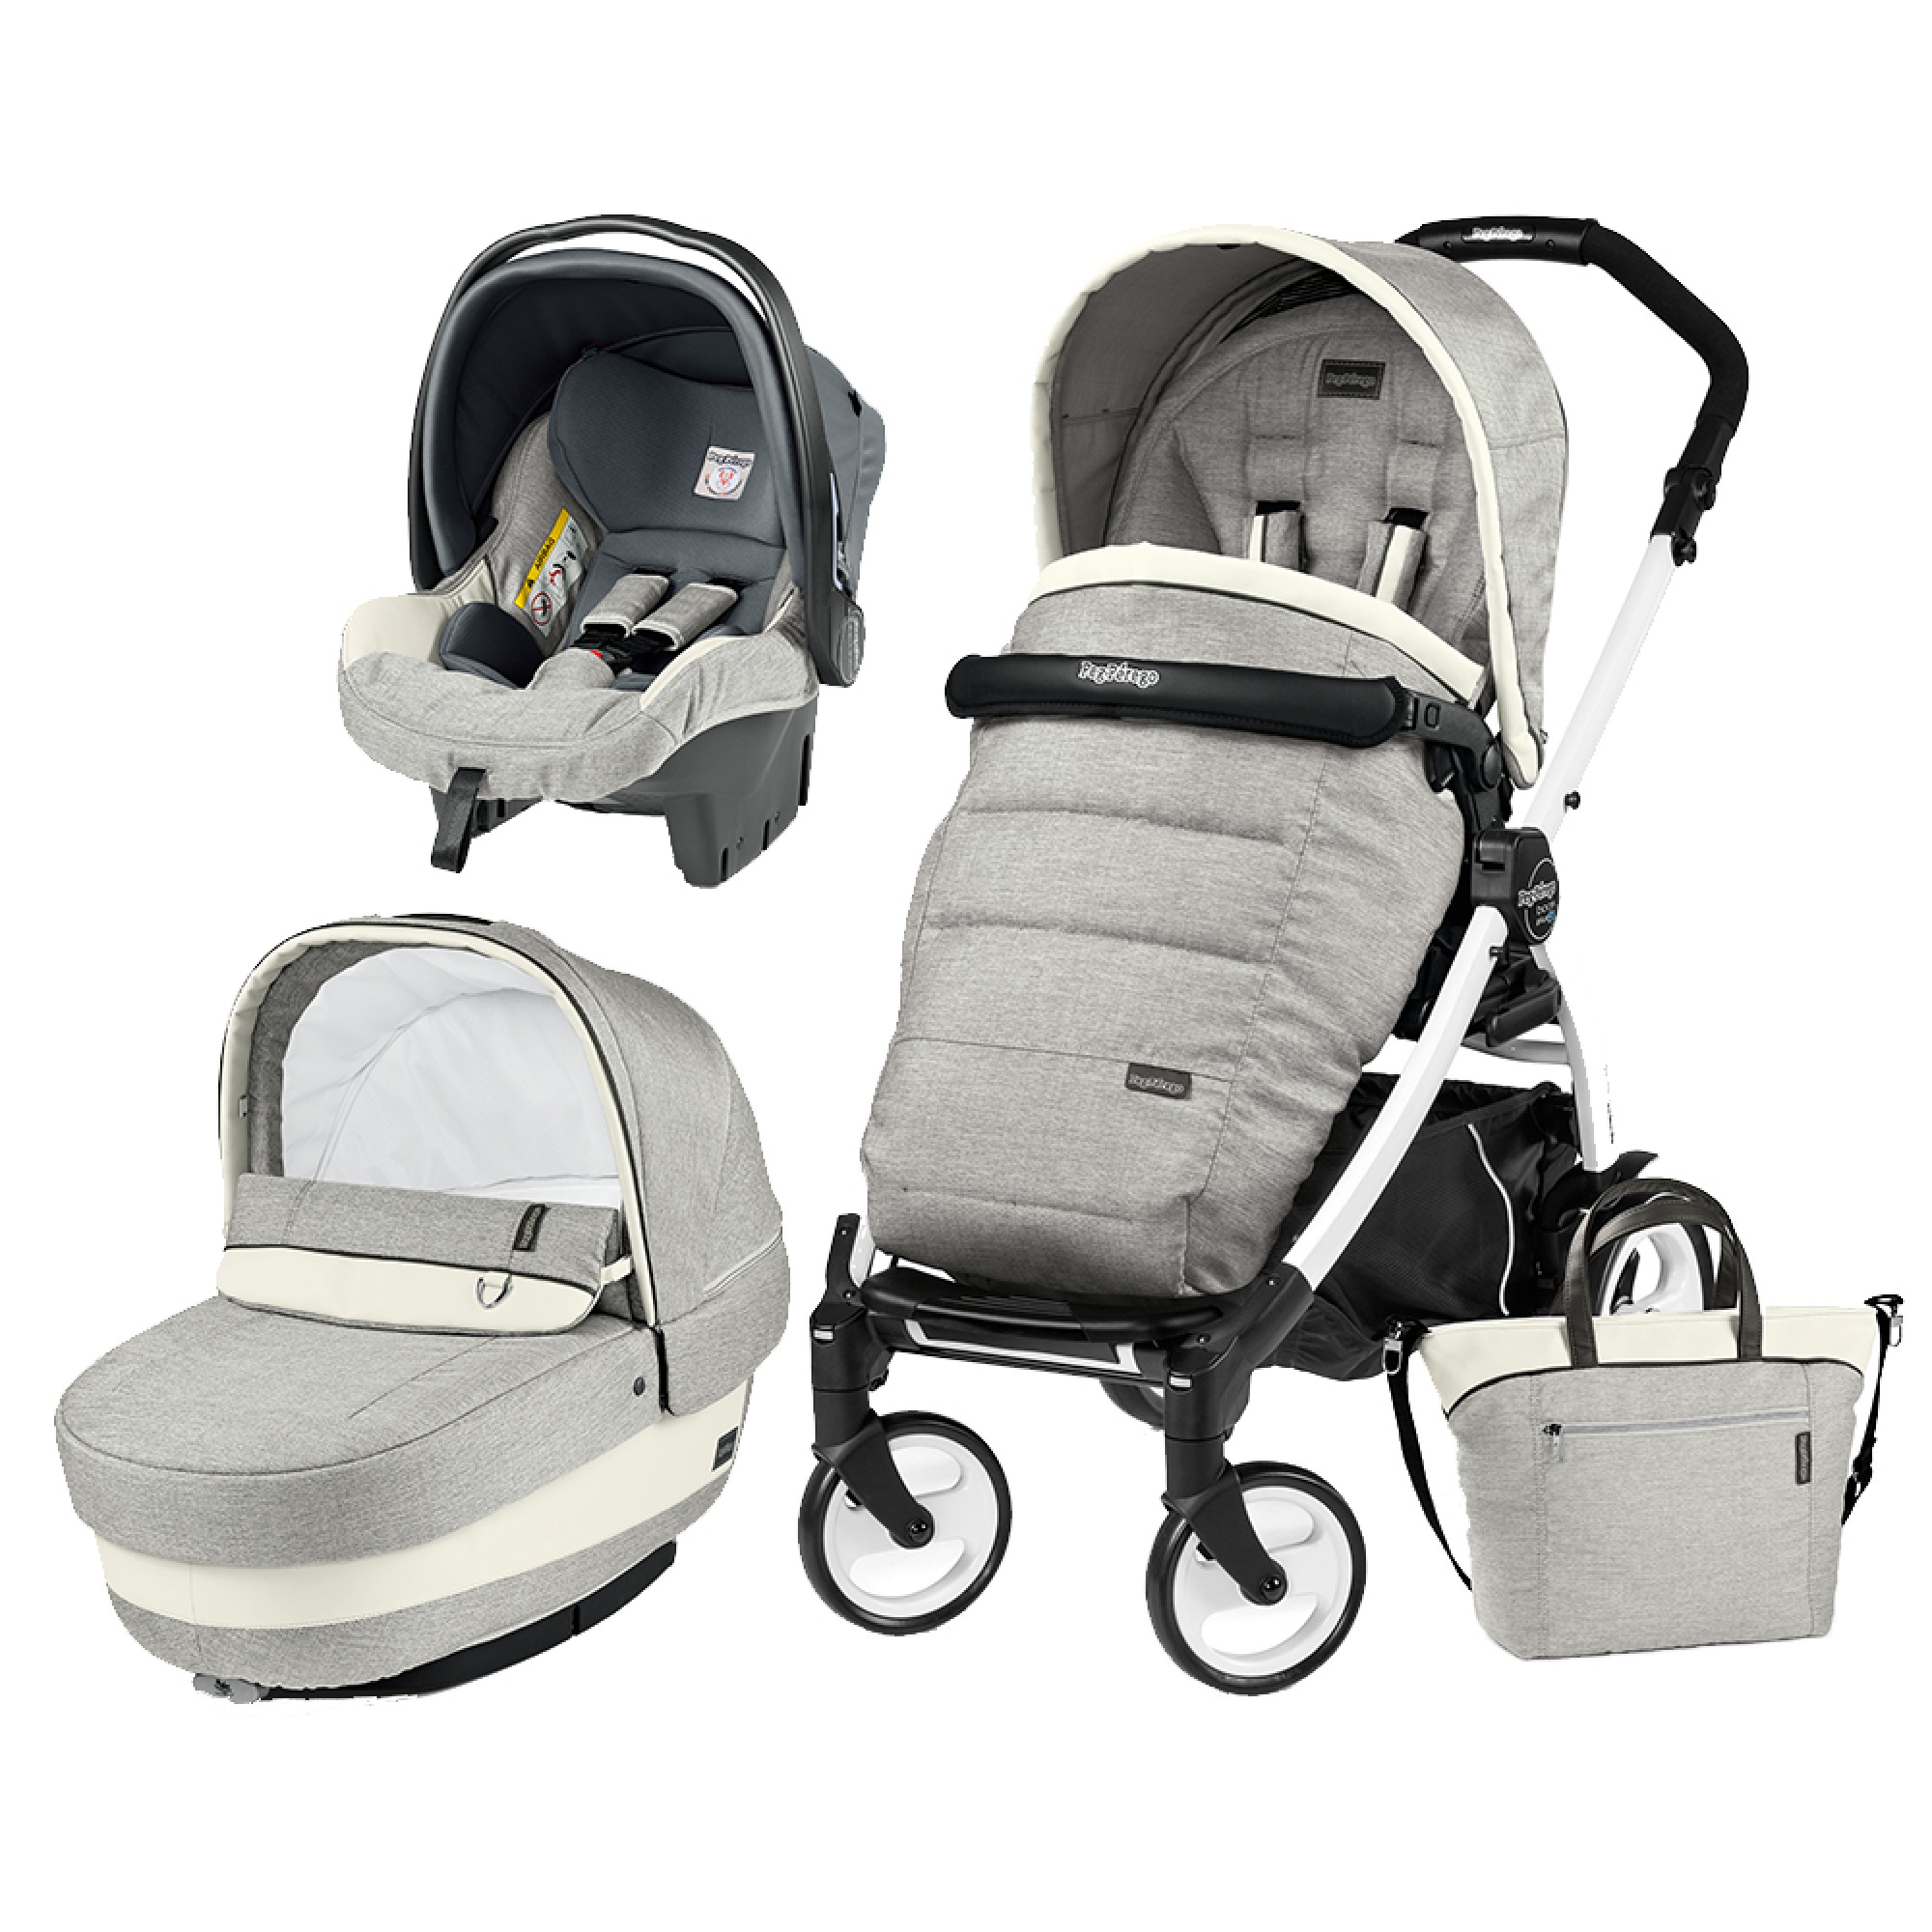 Carucior 3 In 1, Peg Perego, Book Plus 51, Black&White, Completo Elite